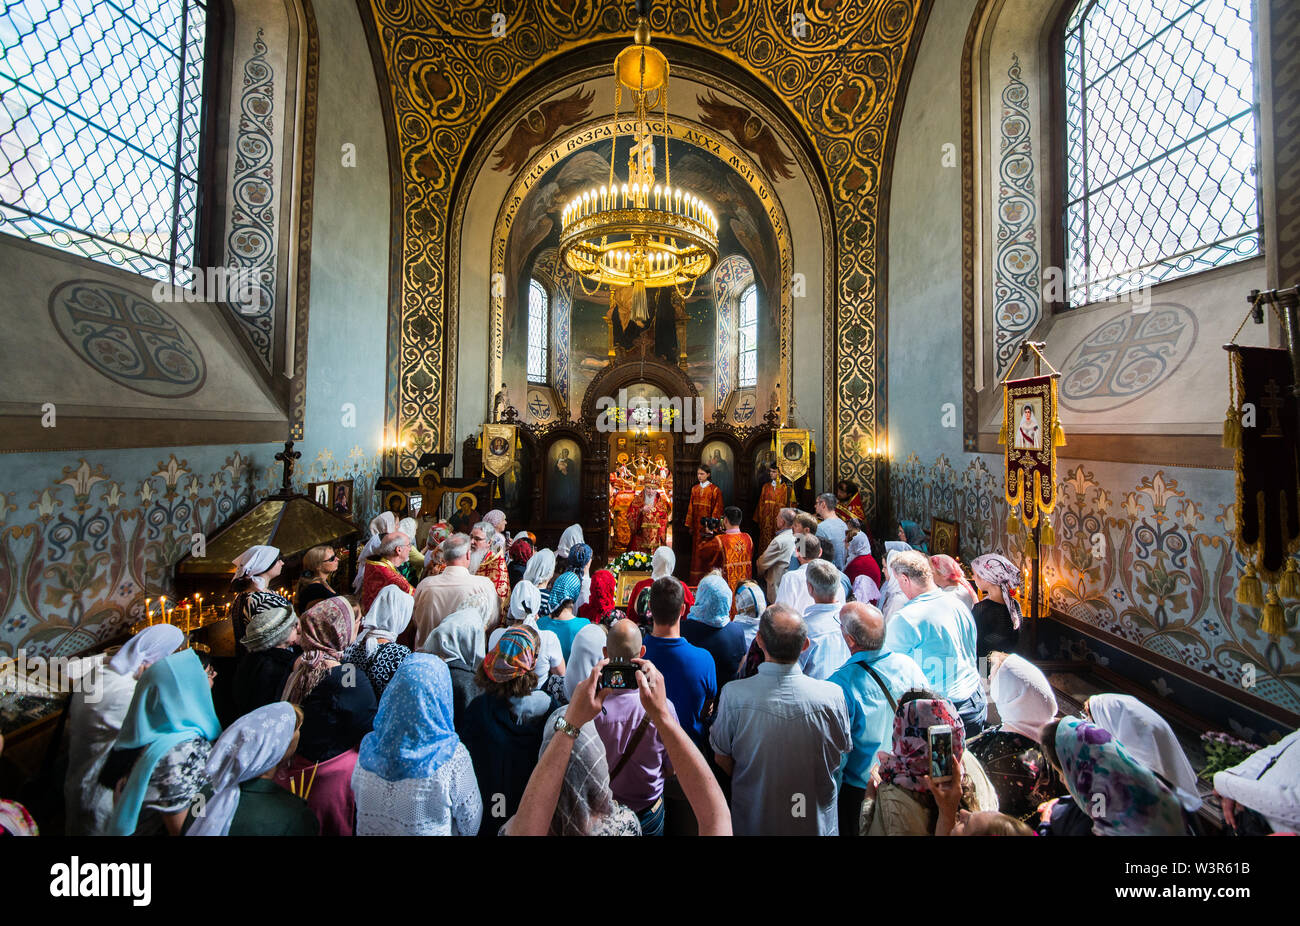 Darmstadt, Germany. 17th July, 2019. Believers take part in the service. The Russian Orthodox Church on Mathildenhöhe commemorates the murder of the last Russian tsar family on 17 July 1918 with a divine service. Subsequently, bell models were symbolically handed over for the seven new bells. The new bells, which are not yet completely finished, will be consecrated at a later date. Credit: Andreas Arnold/dpa/Alamy Live News - Stock Image